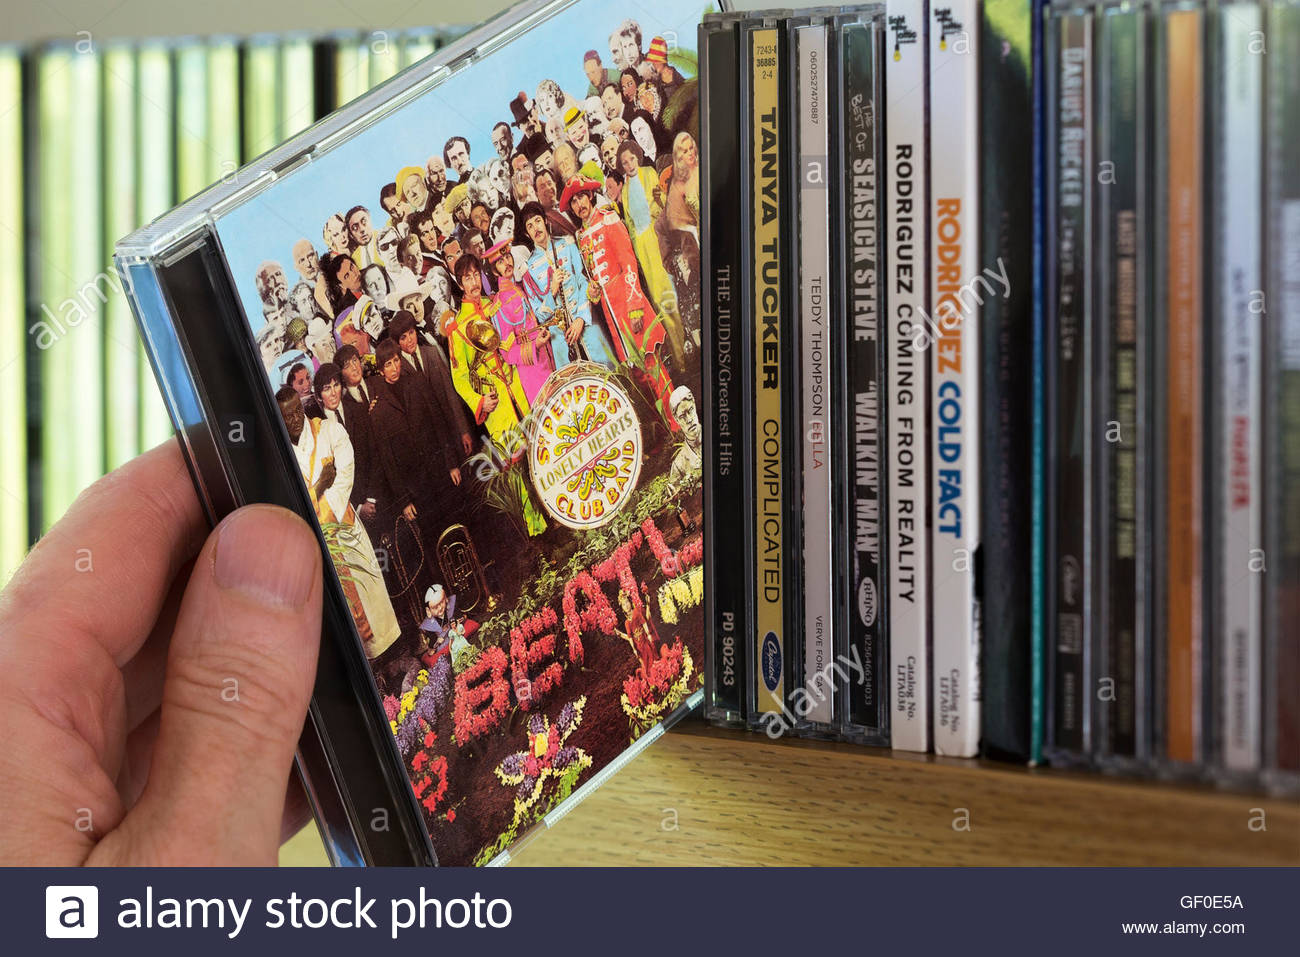 Sergeant Peppers Lonely Hearts Club Band Stock Photos